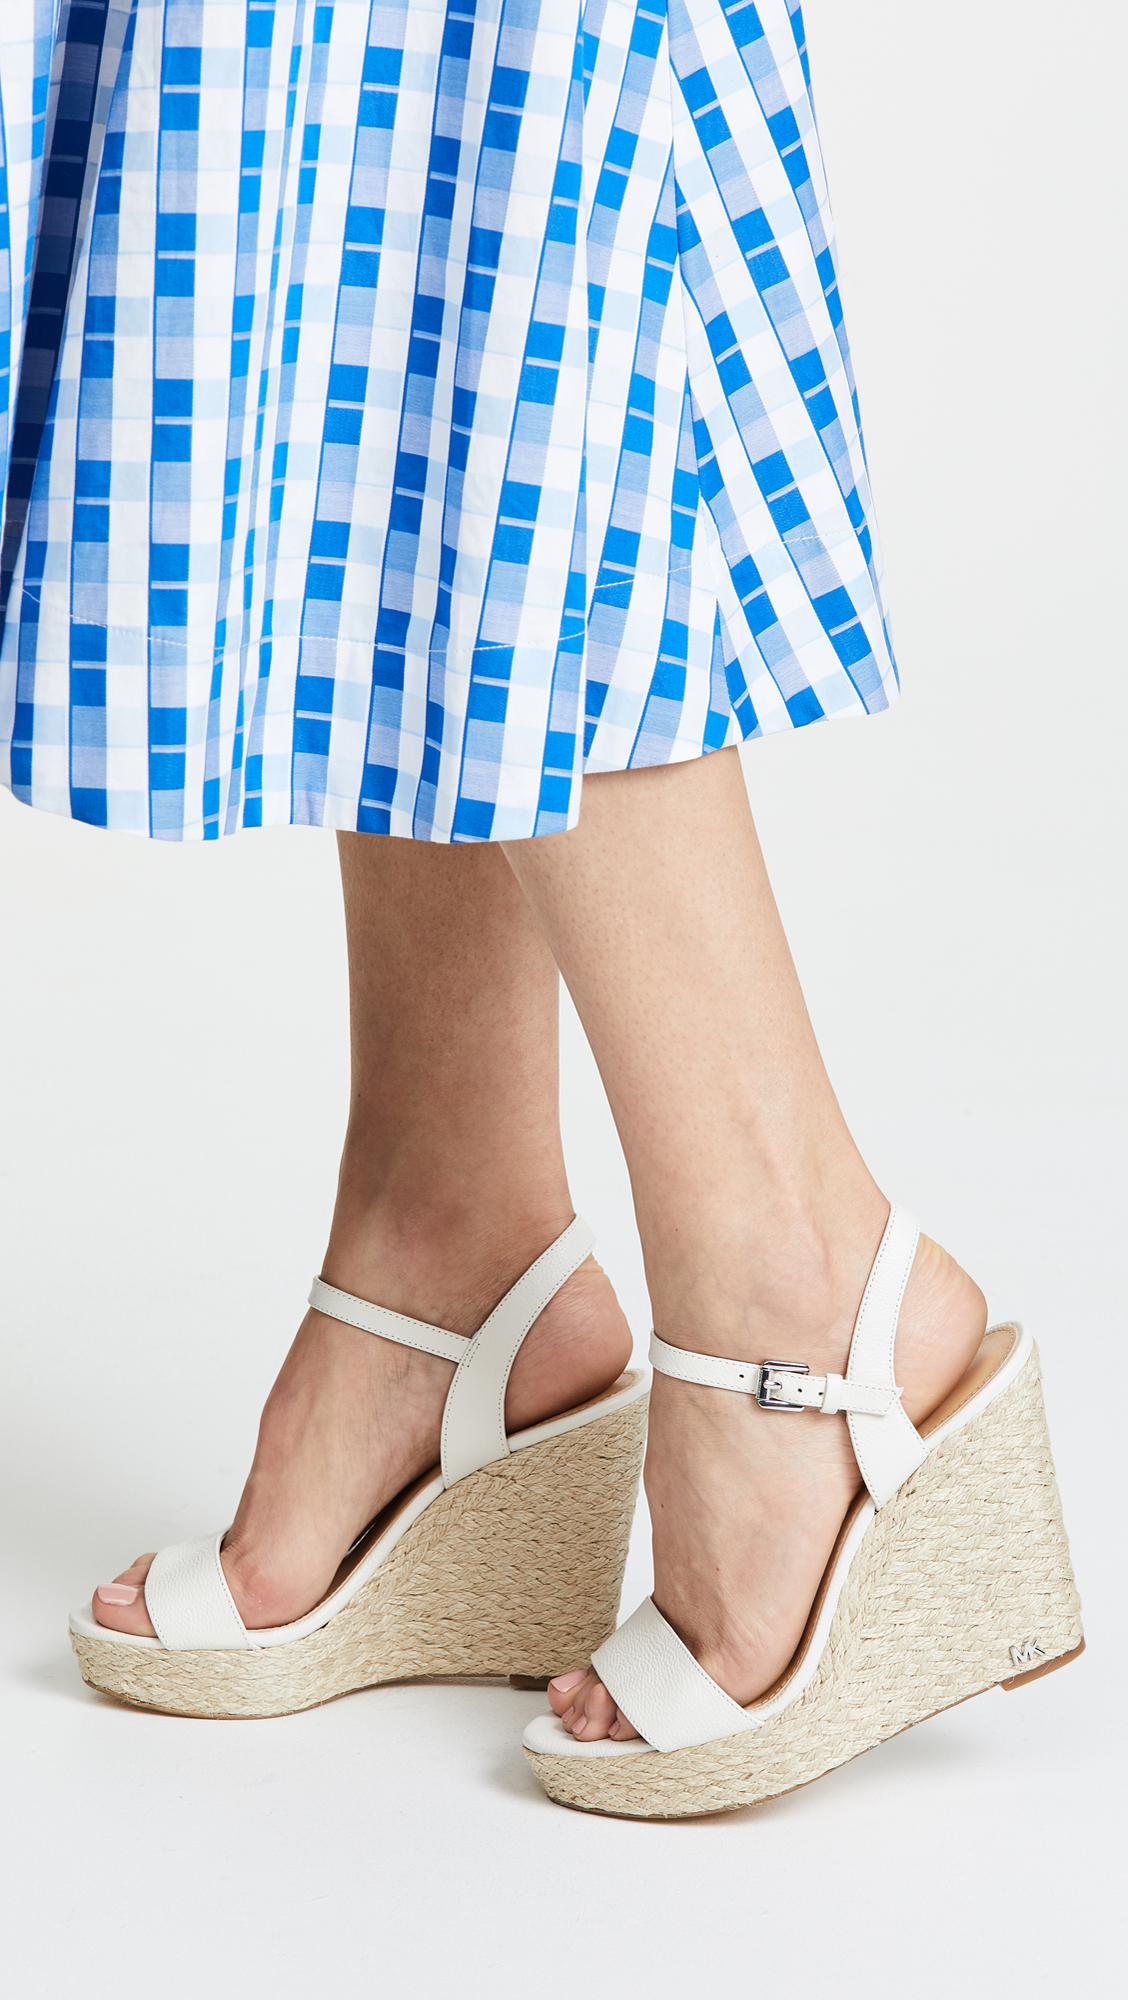 31d53ca8f24 MICHAEL Michael Kors Jill Espadrille Wedges in White - Lyst